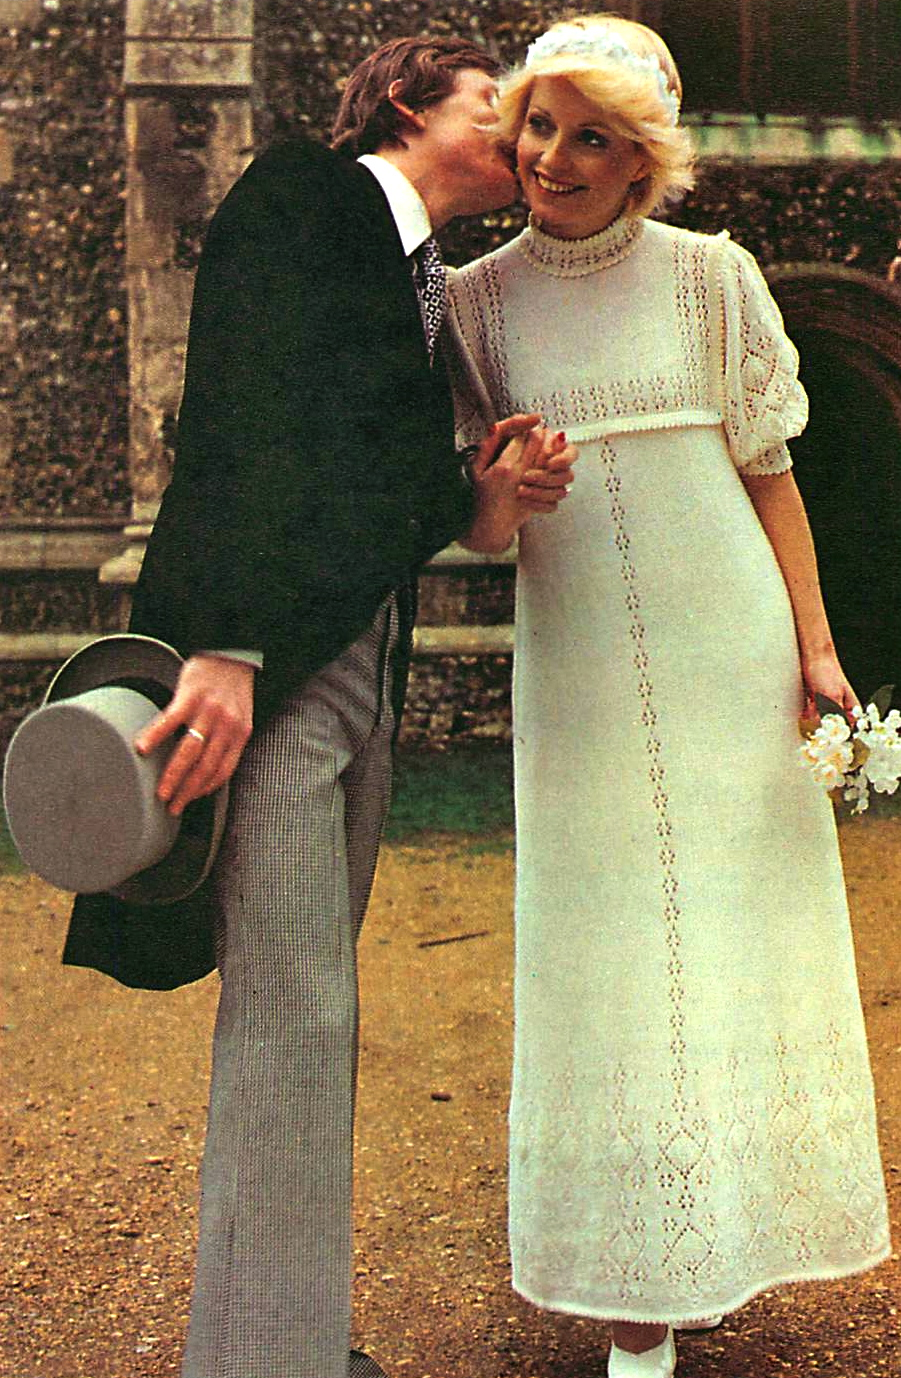 Vintage 1960s mod style wedding dress knitting pattern- how to make ...